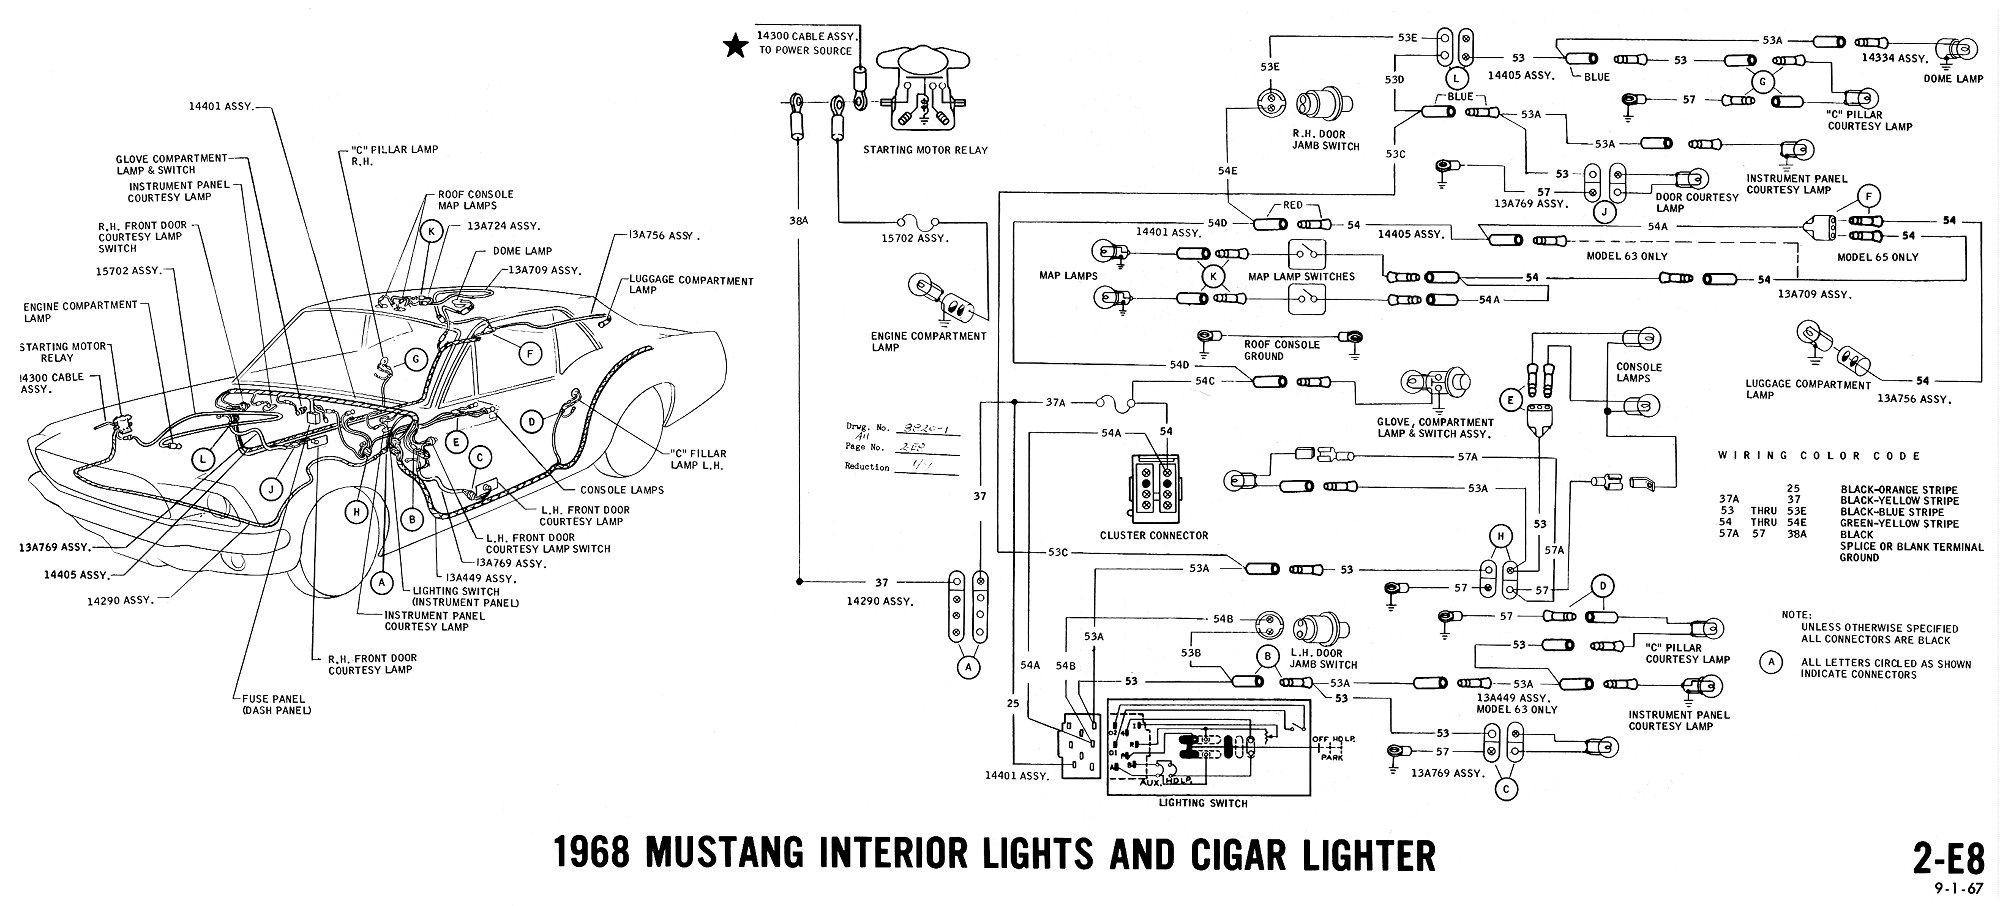 1967 Mustang Wiring Diagram Manual Along With Control Dryer Schematic 68 Diagrams Source